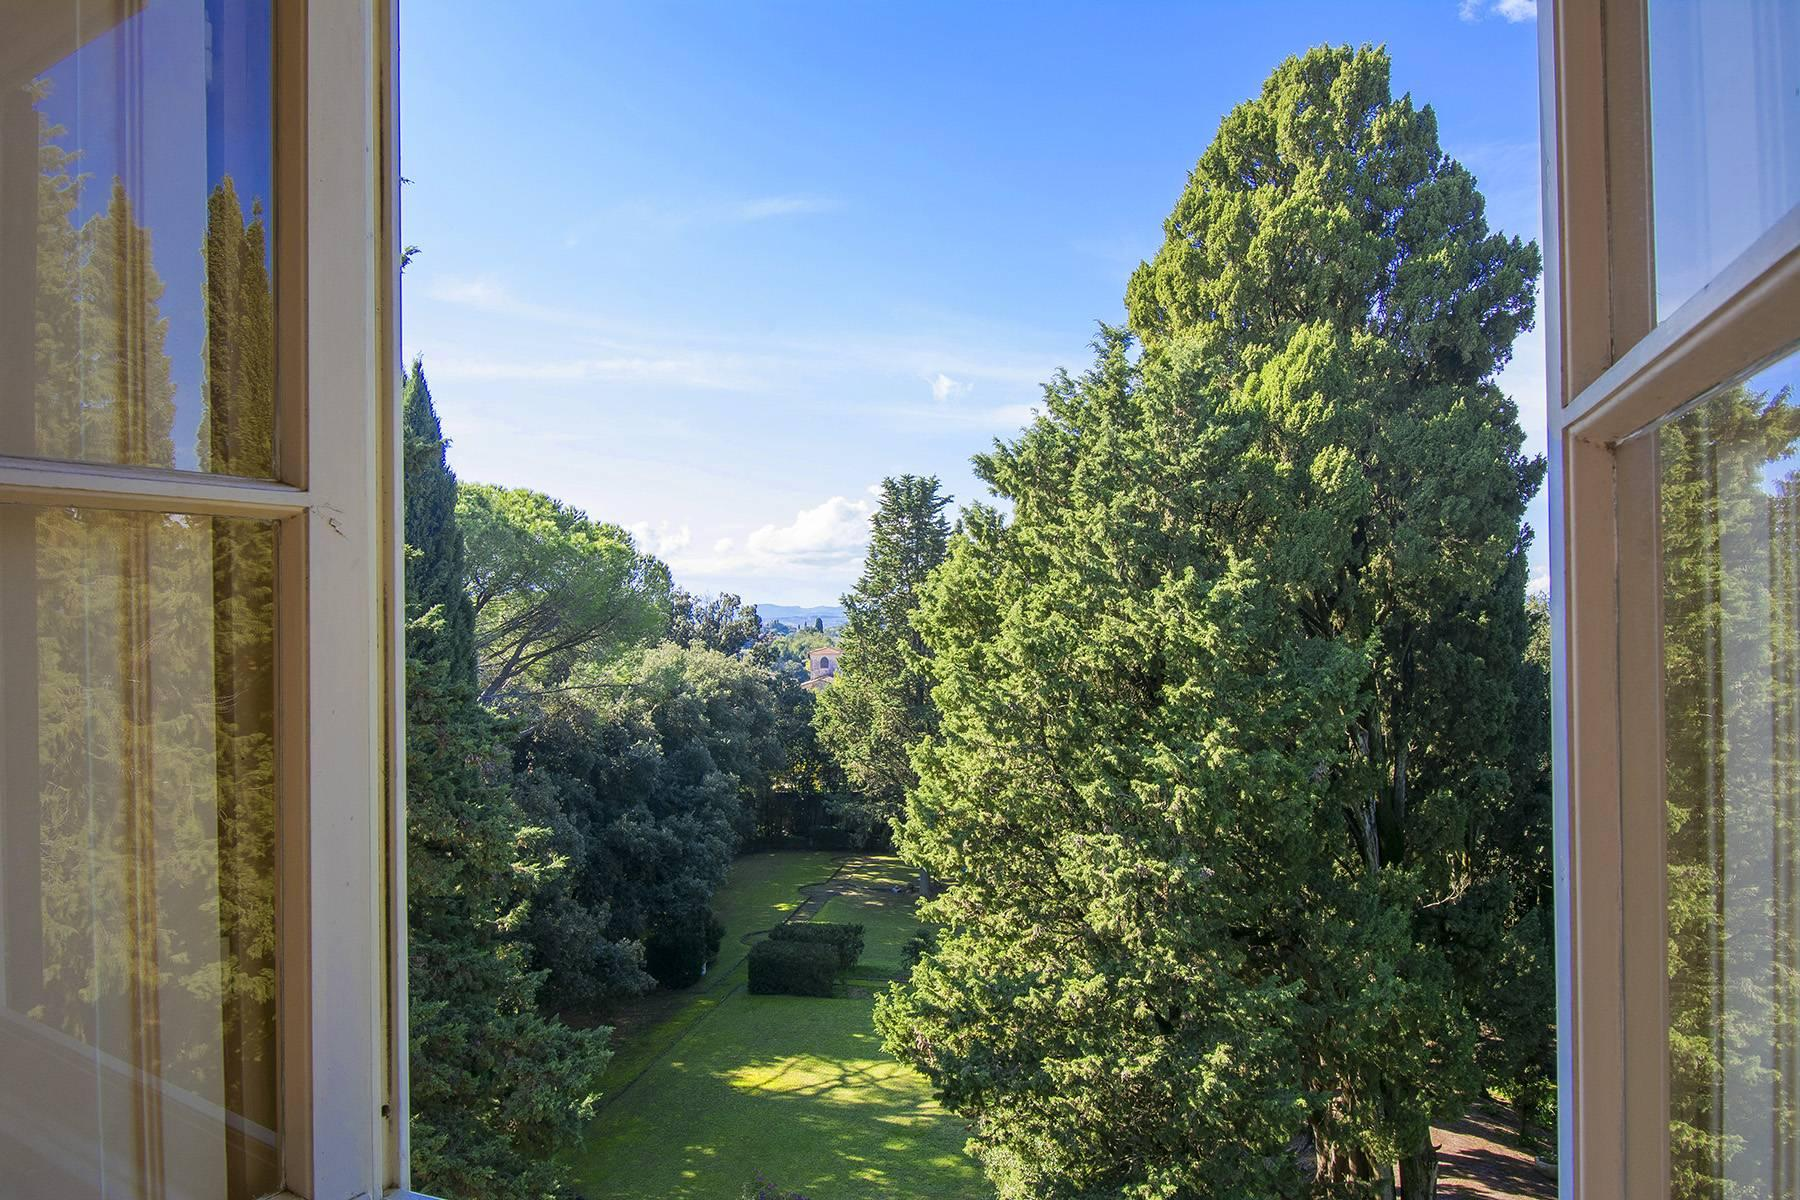 Charming Medicean Villa on the Tuscan hills - 27